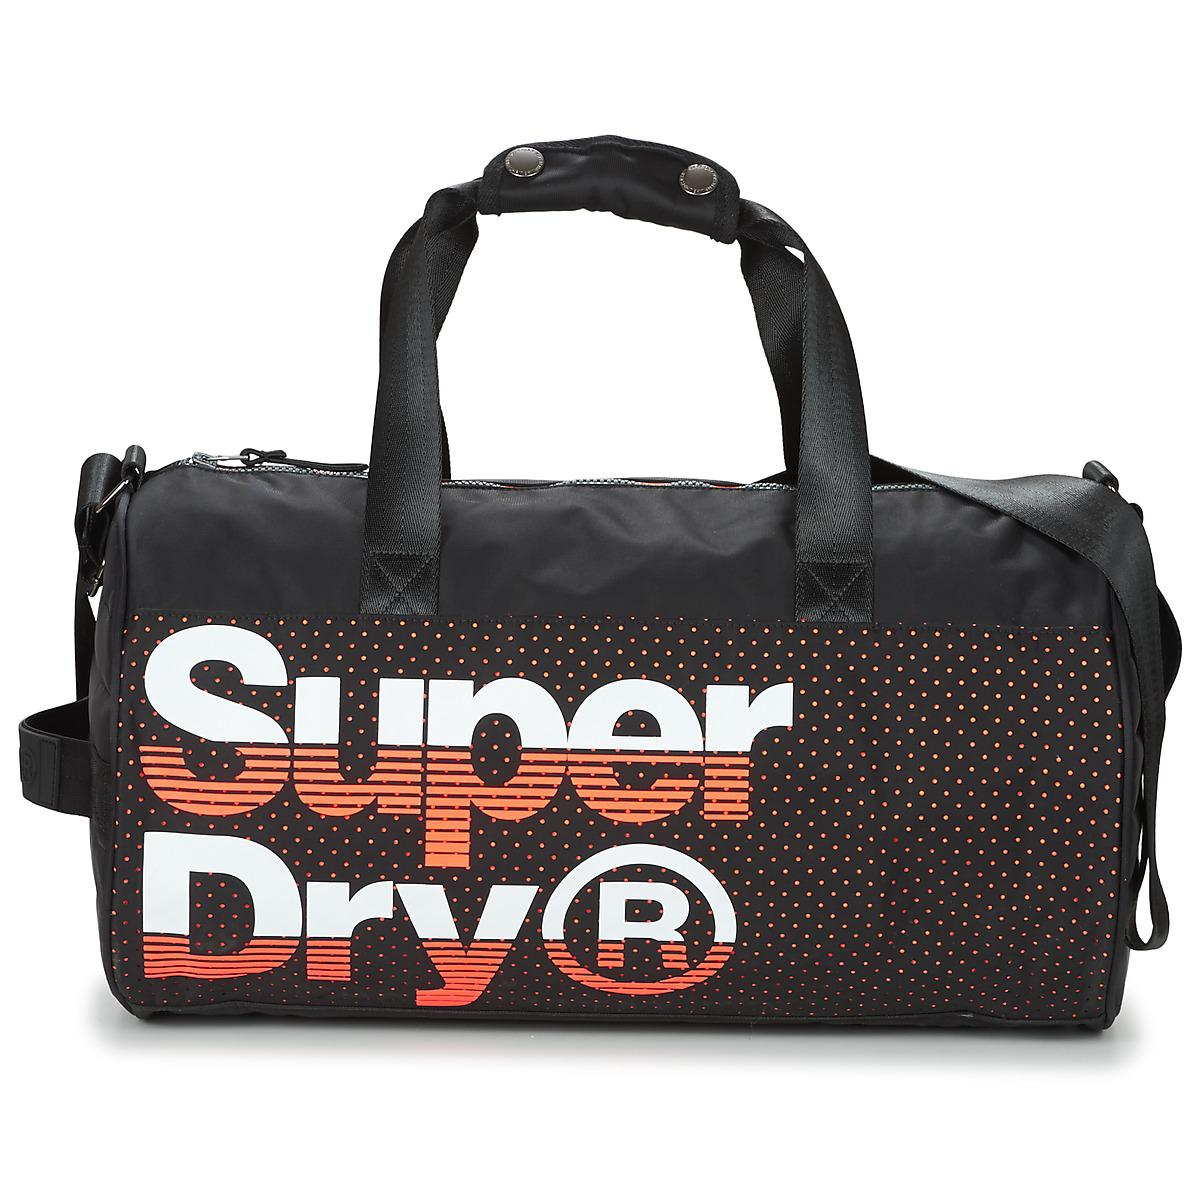 88b3cf42f0 Superdry Nue Wave Lineman Barrel Men's Sports Bag In Black in Black ...